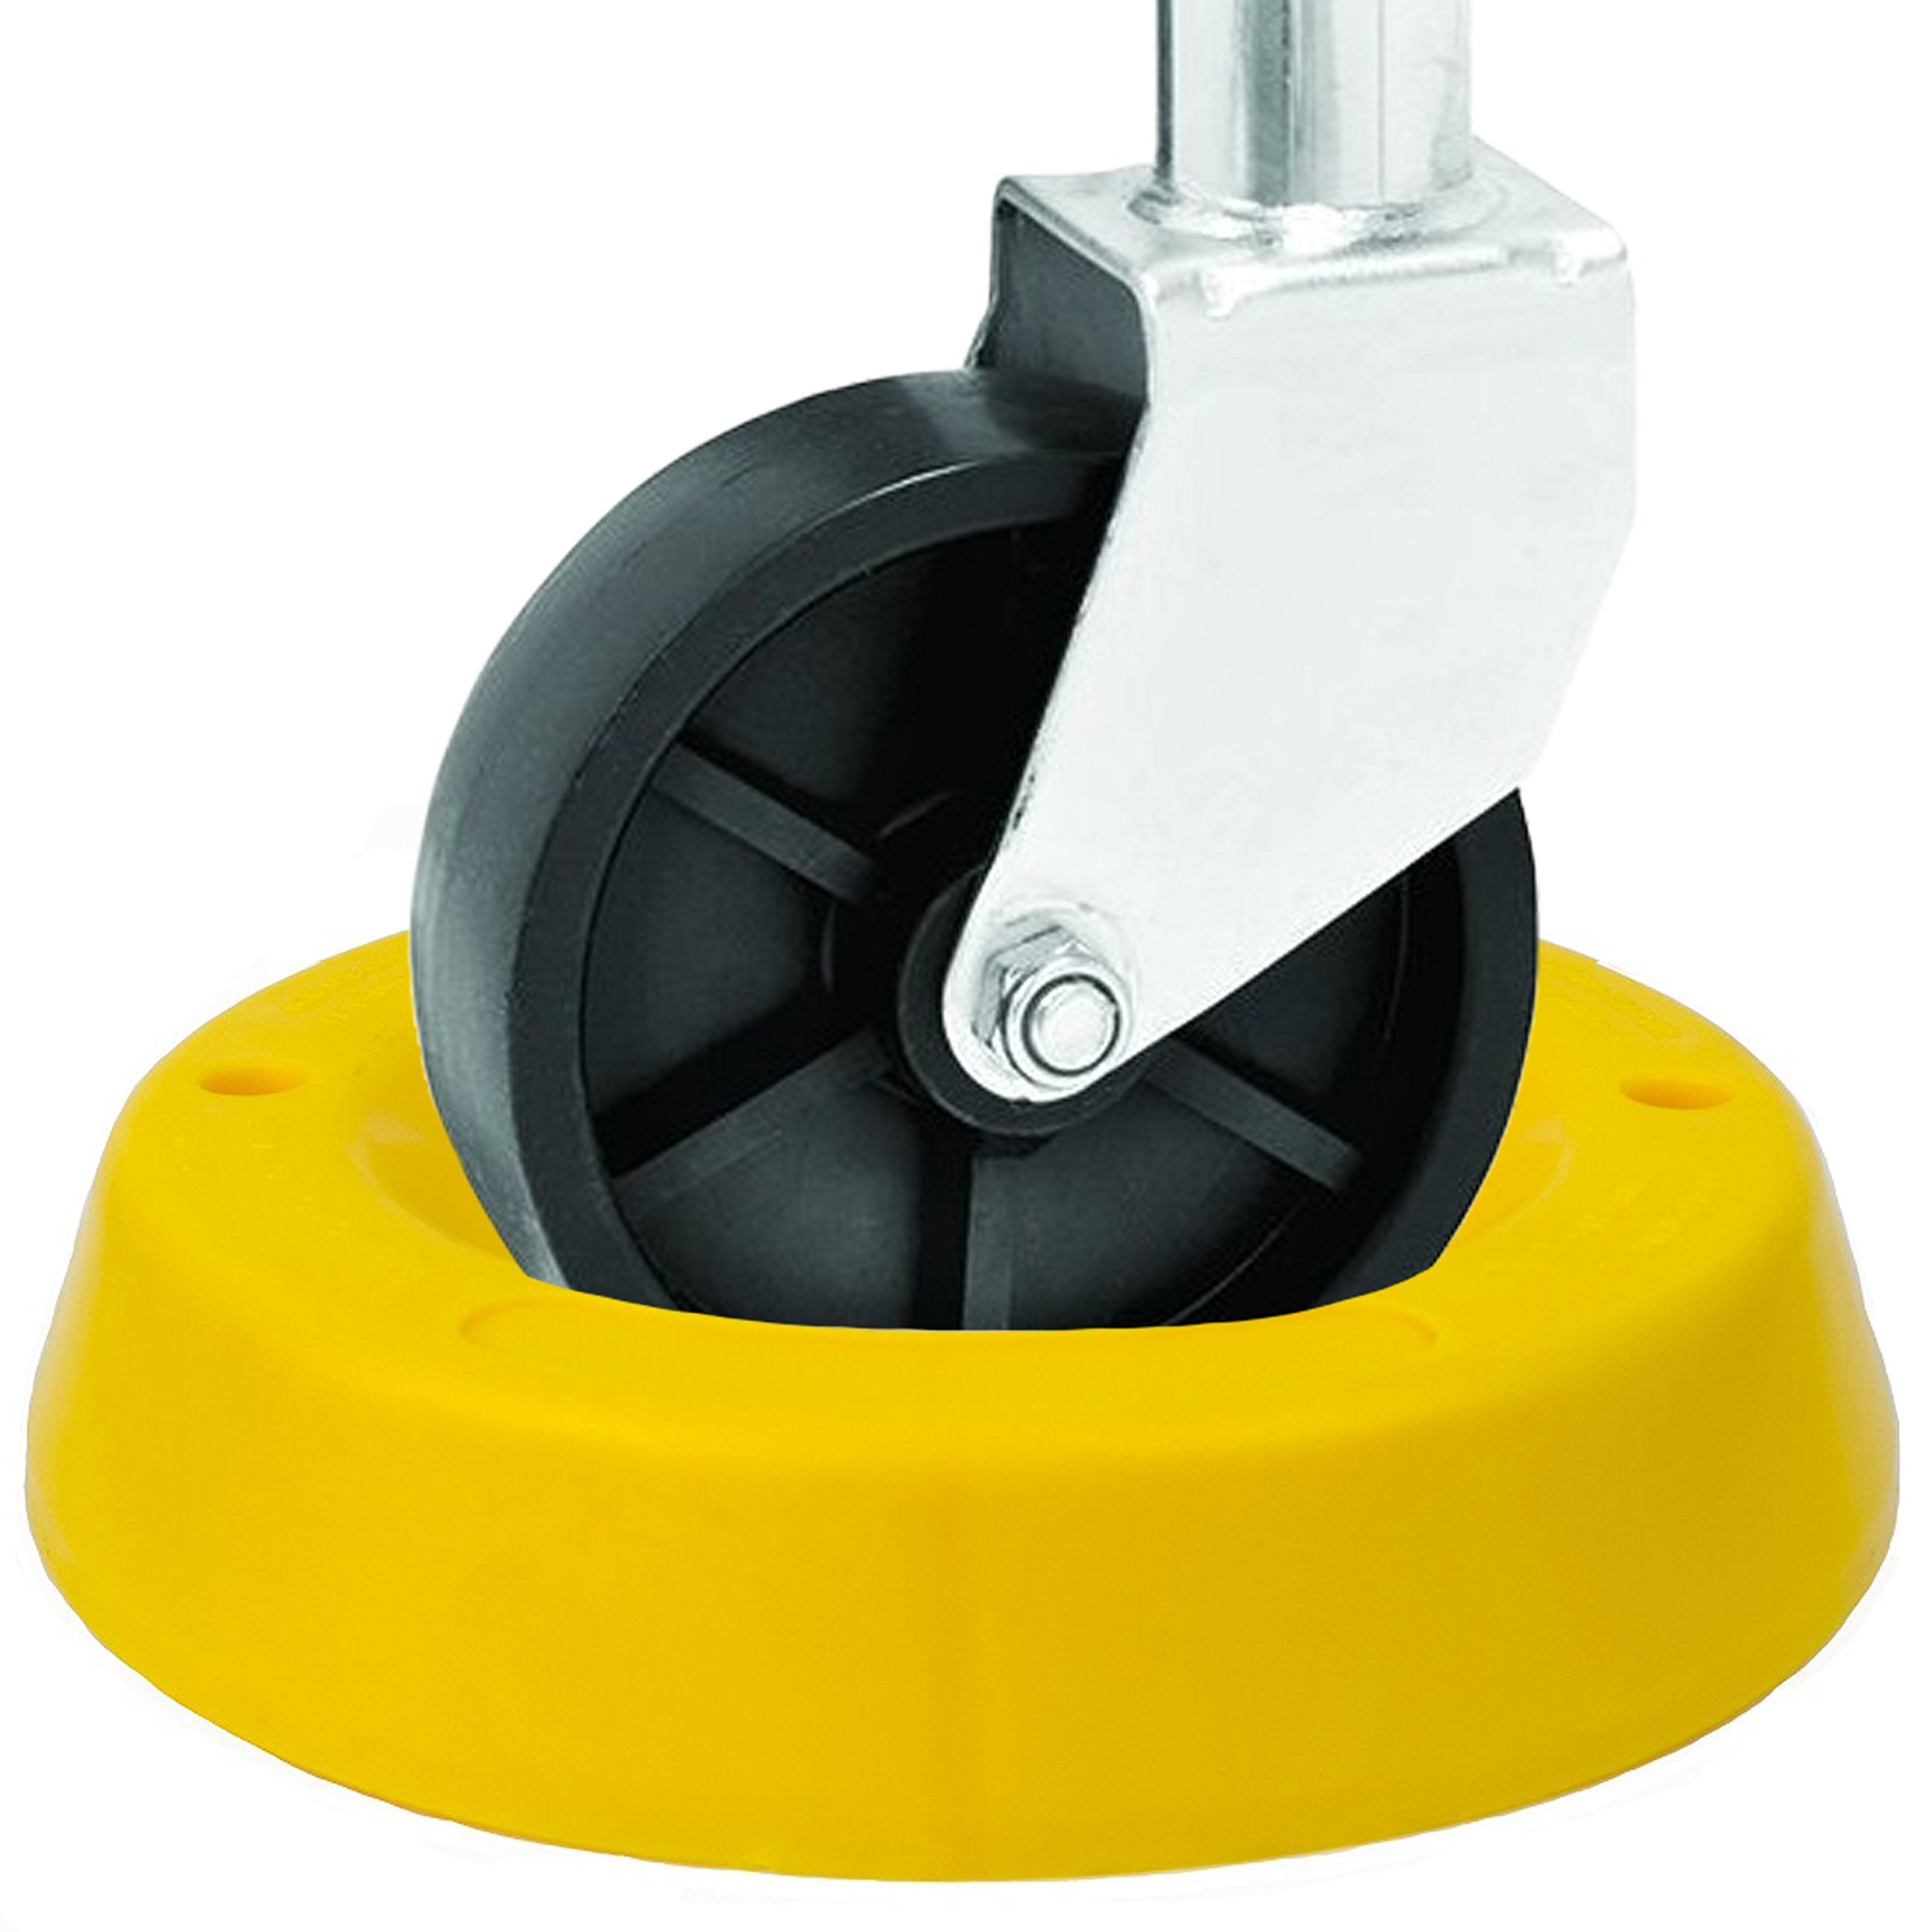 BUNKERWALL Trailer Tongue Jack Wheel Dock for Travel Trailer Jack Caster - High Visibility Yellow by BUNKERWALL